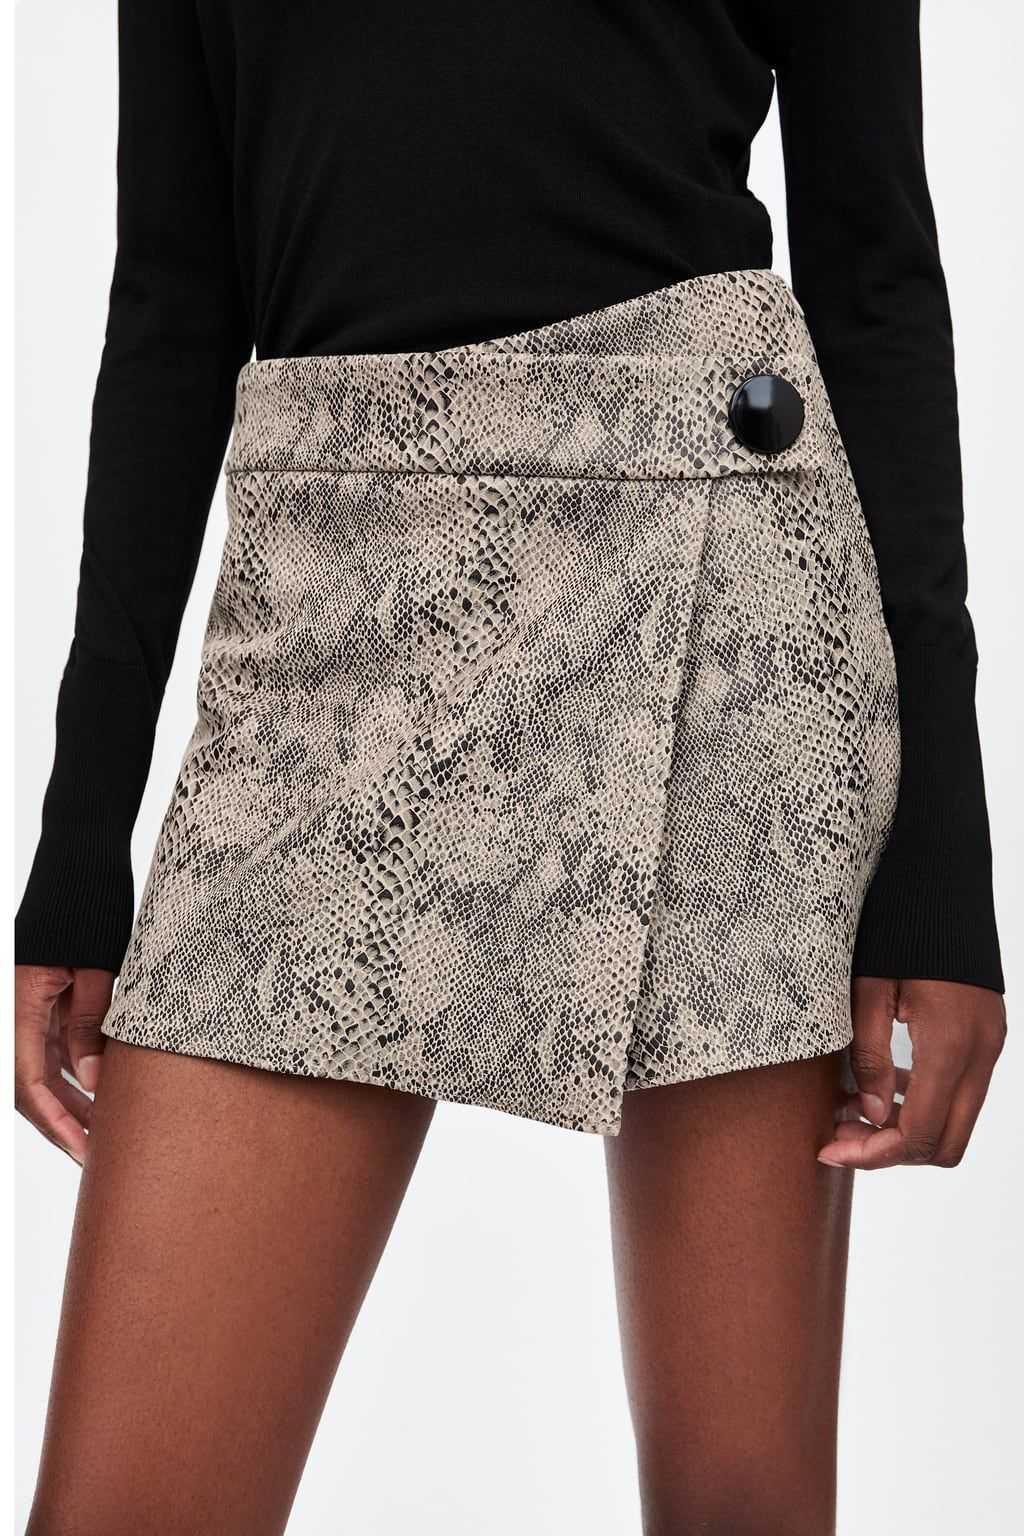 89bae5637185e Image 4 of SNAKESKIN PRINT SPLIT SKIRT from Zara